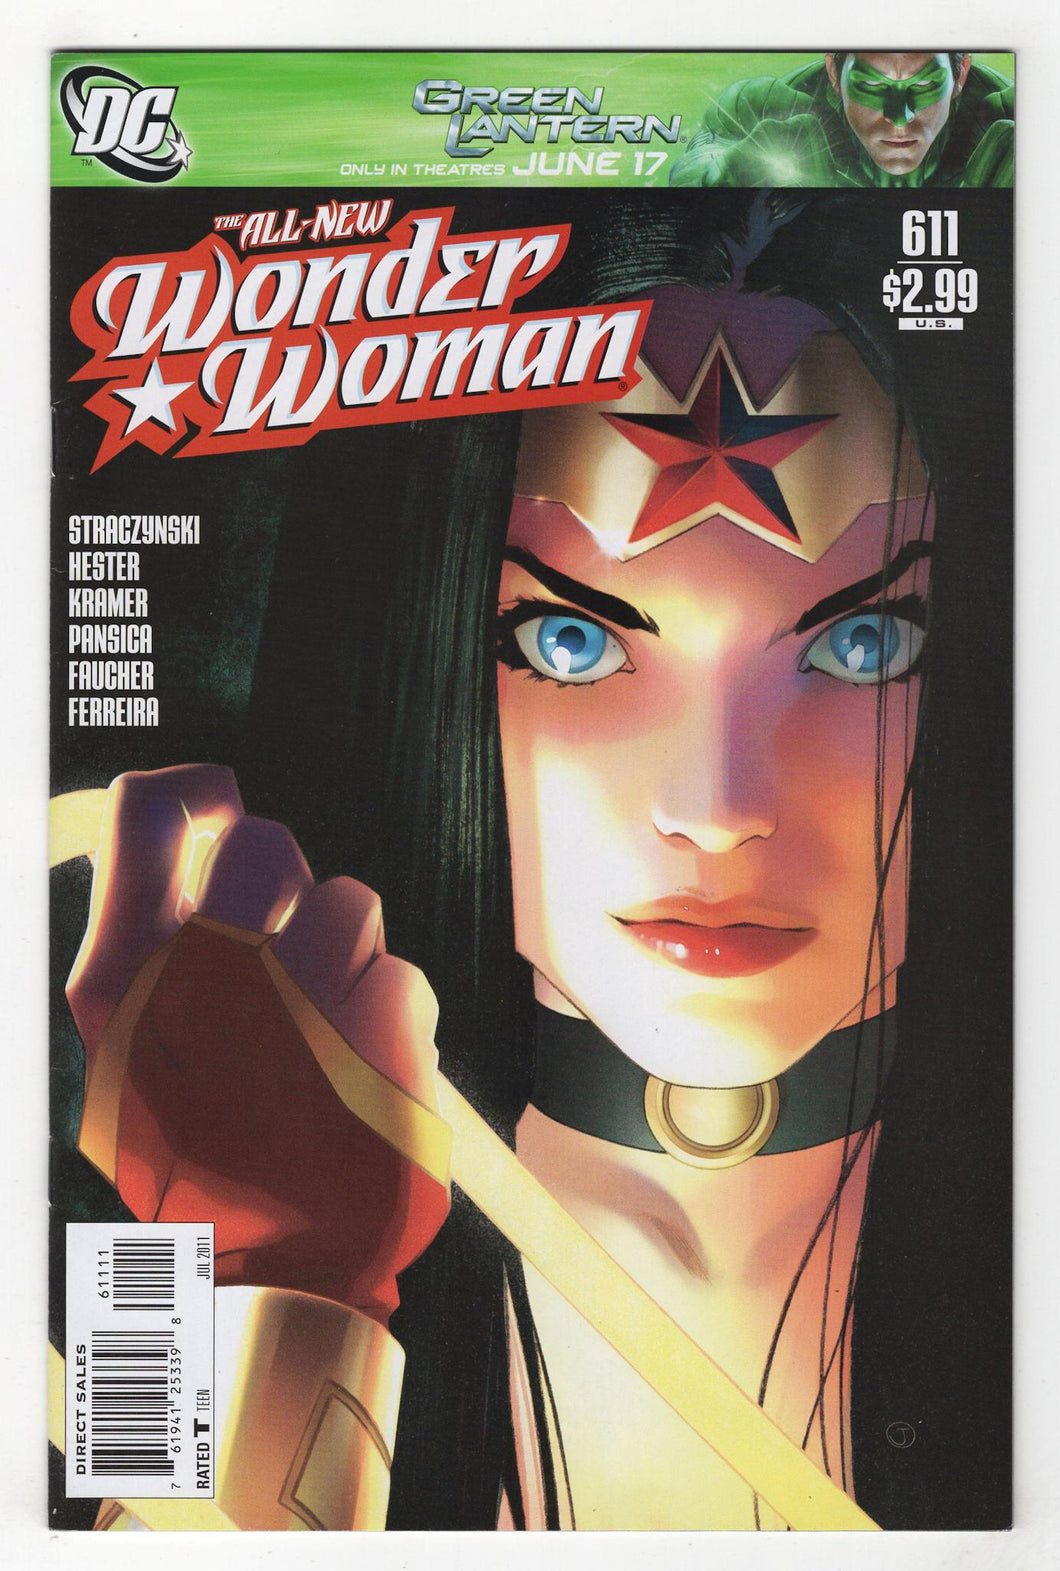 Wonder Woman #611 Cover Front